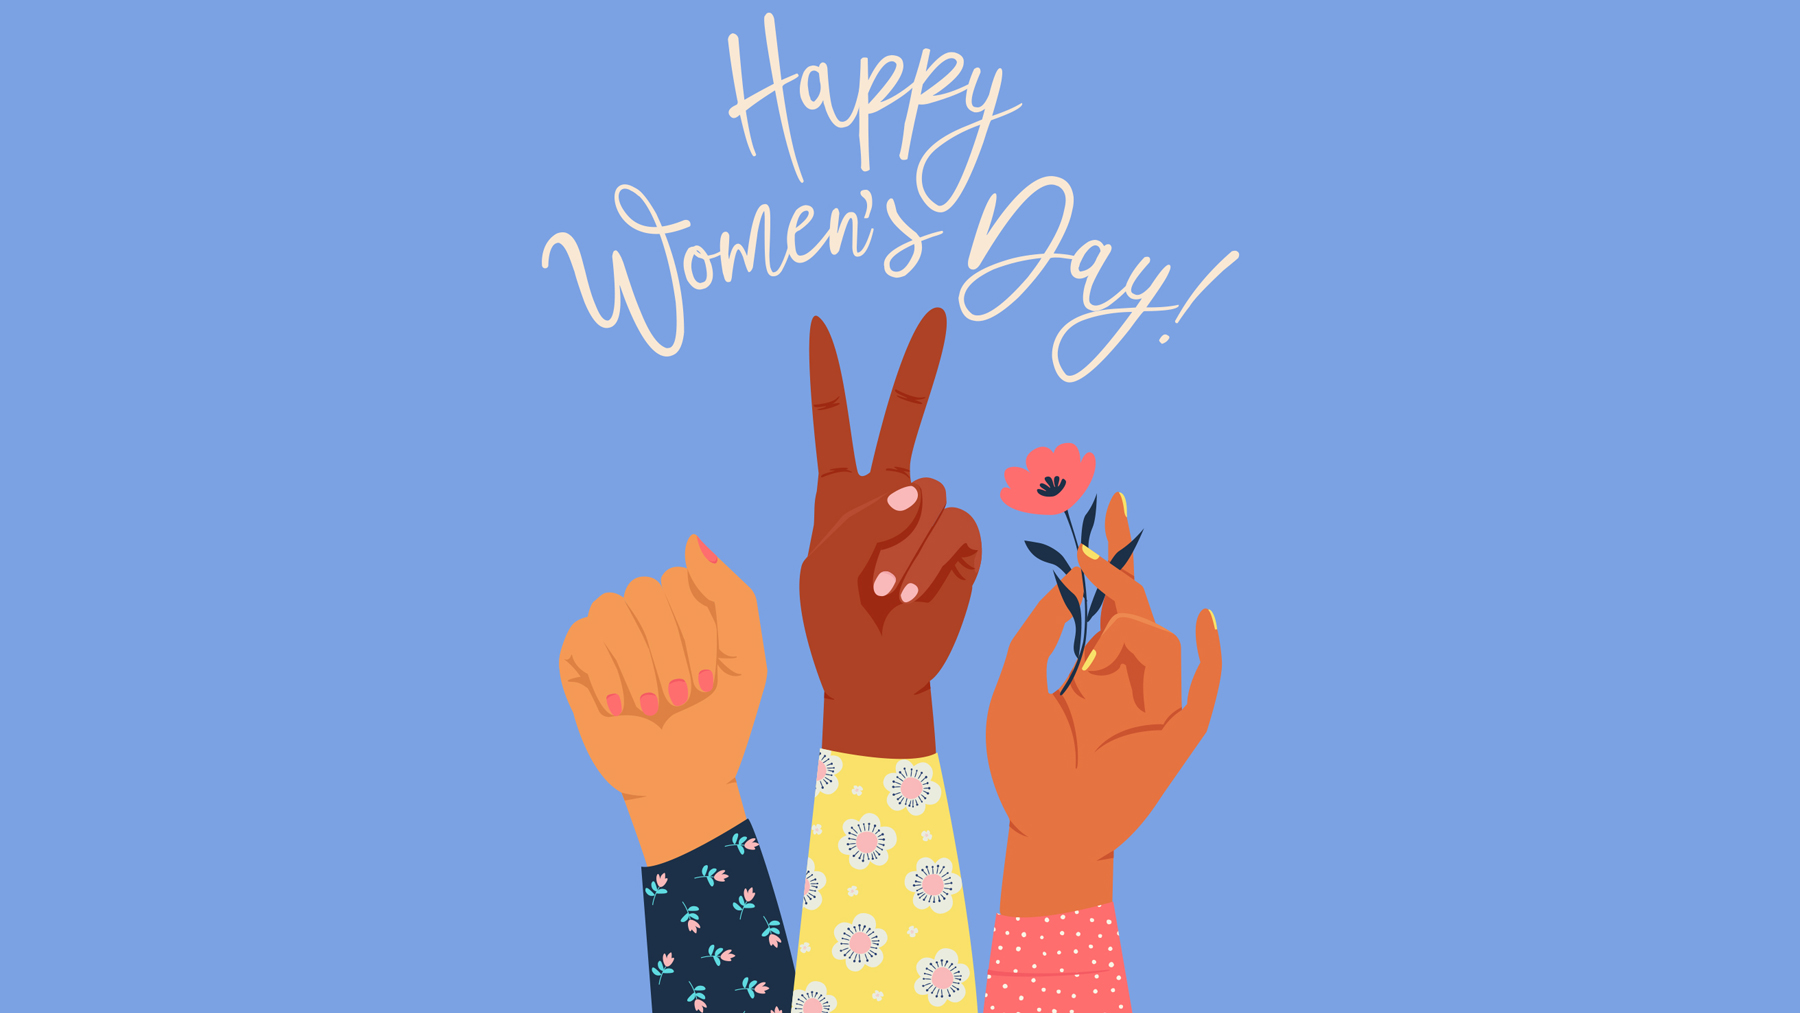 6 International Women's Day Facts You Need to Know